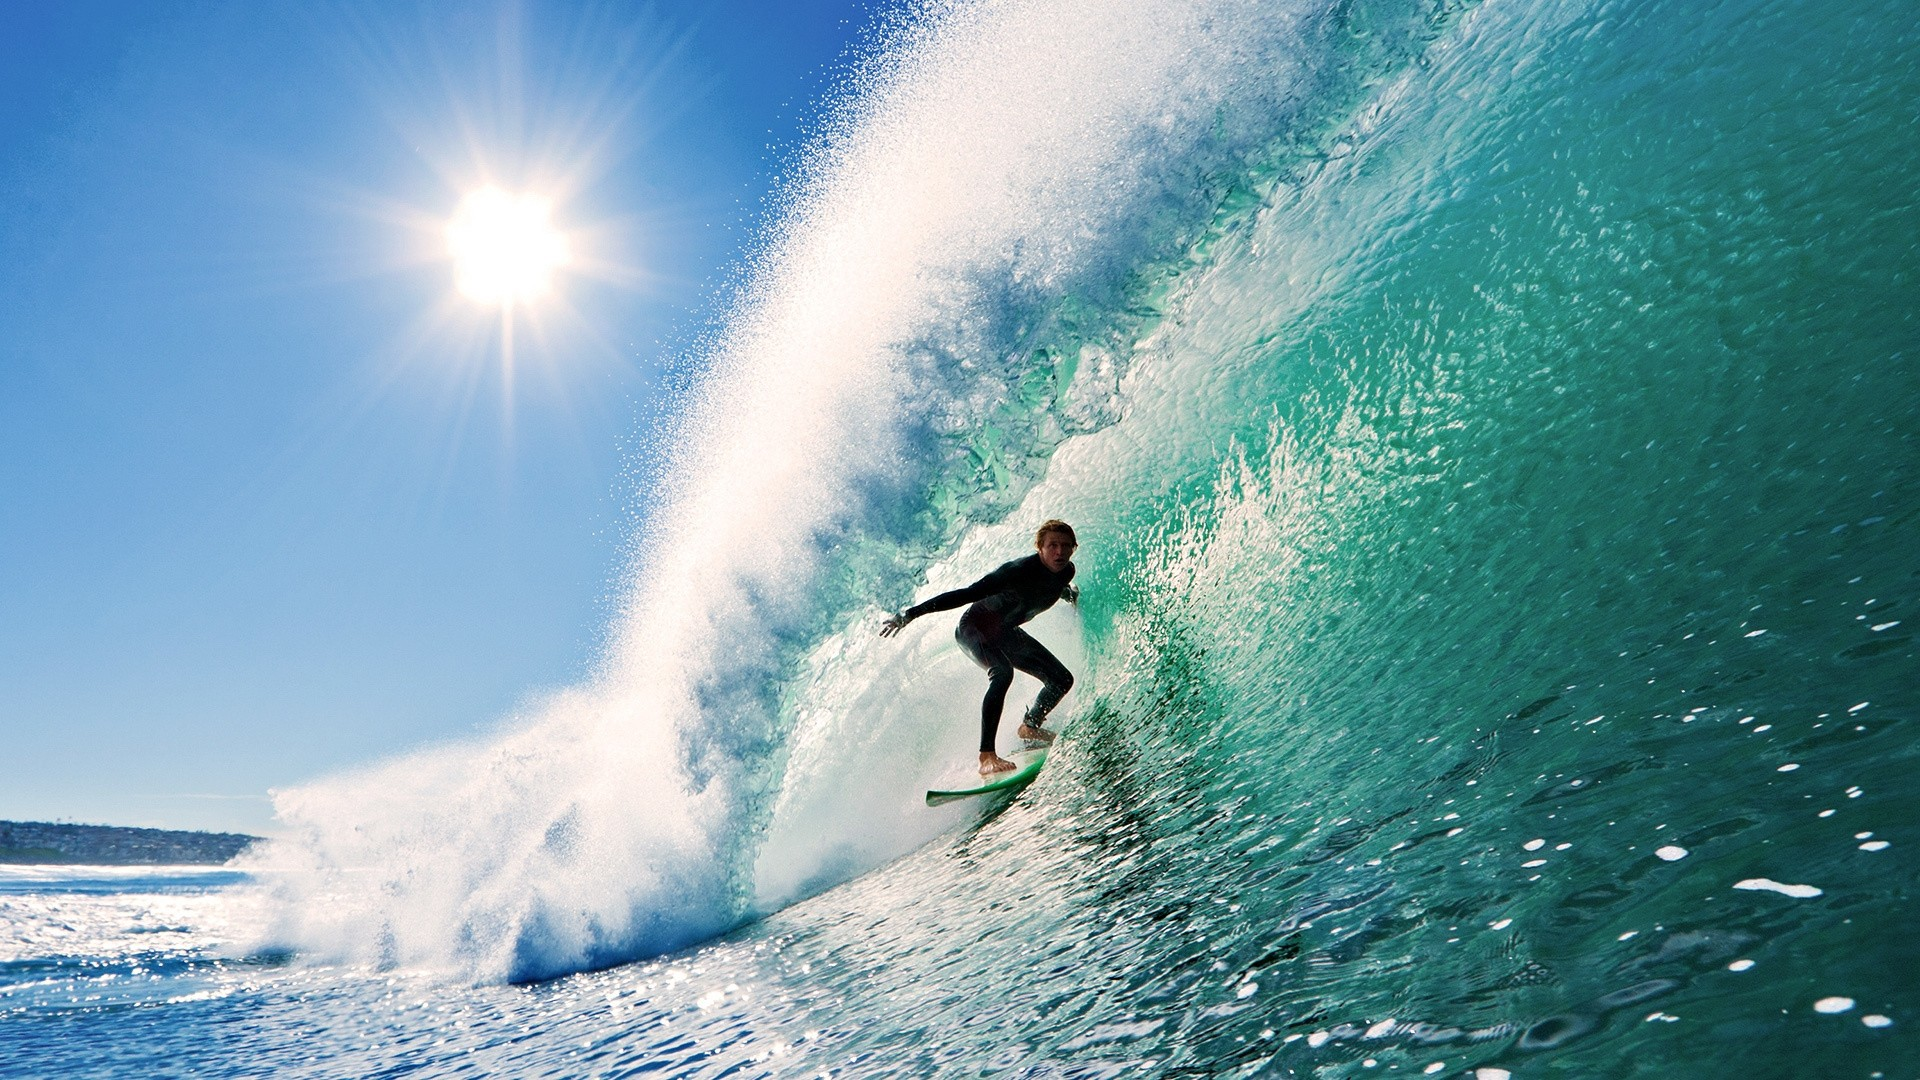 Preview wallpaper surfing, wave, sun, sky 1920×1080